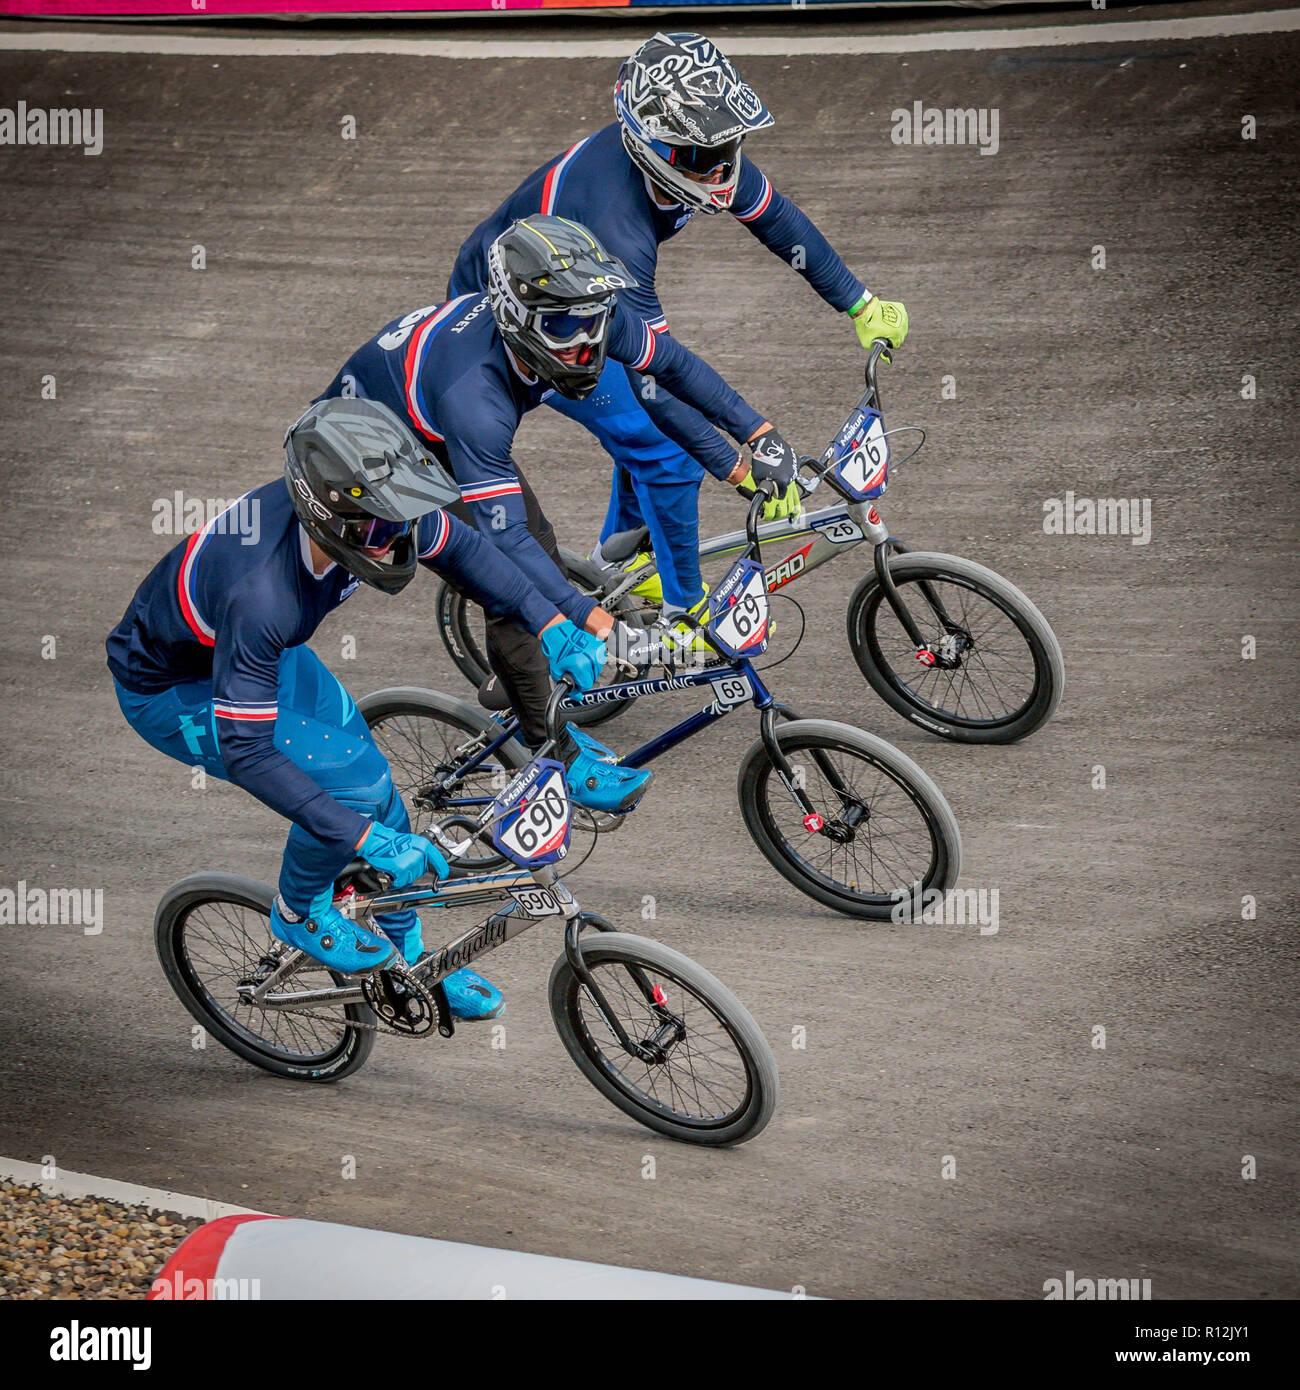 Theo Chapell (690-France), Damien Godet (69-France), Simba Darnand (26-France).  Glasgow2018 European Championships - BMX Racing - Stock Image